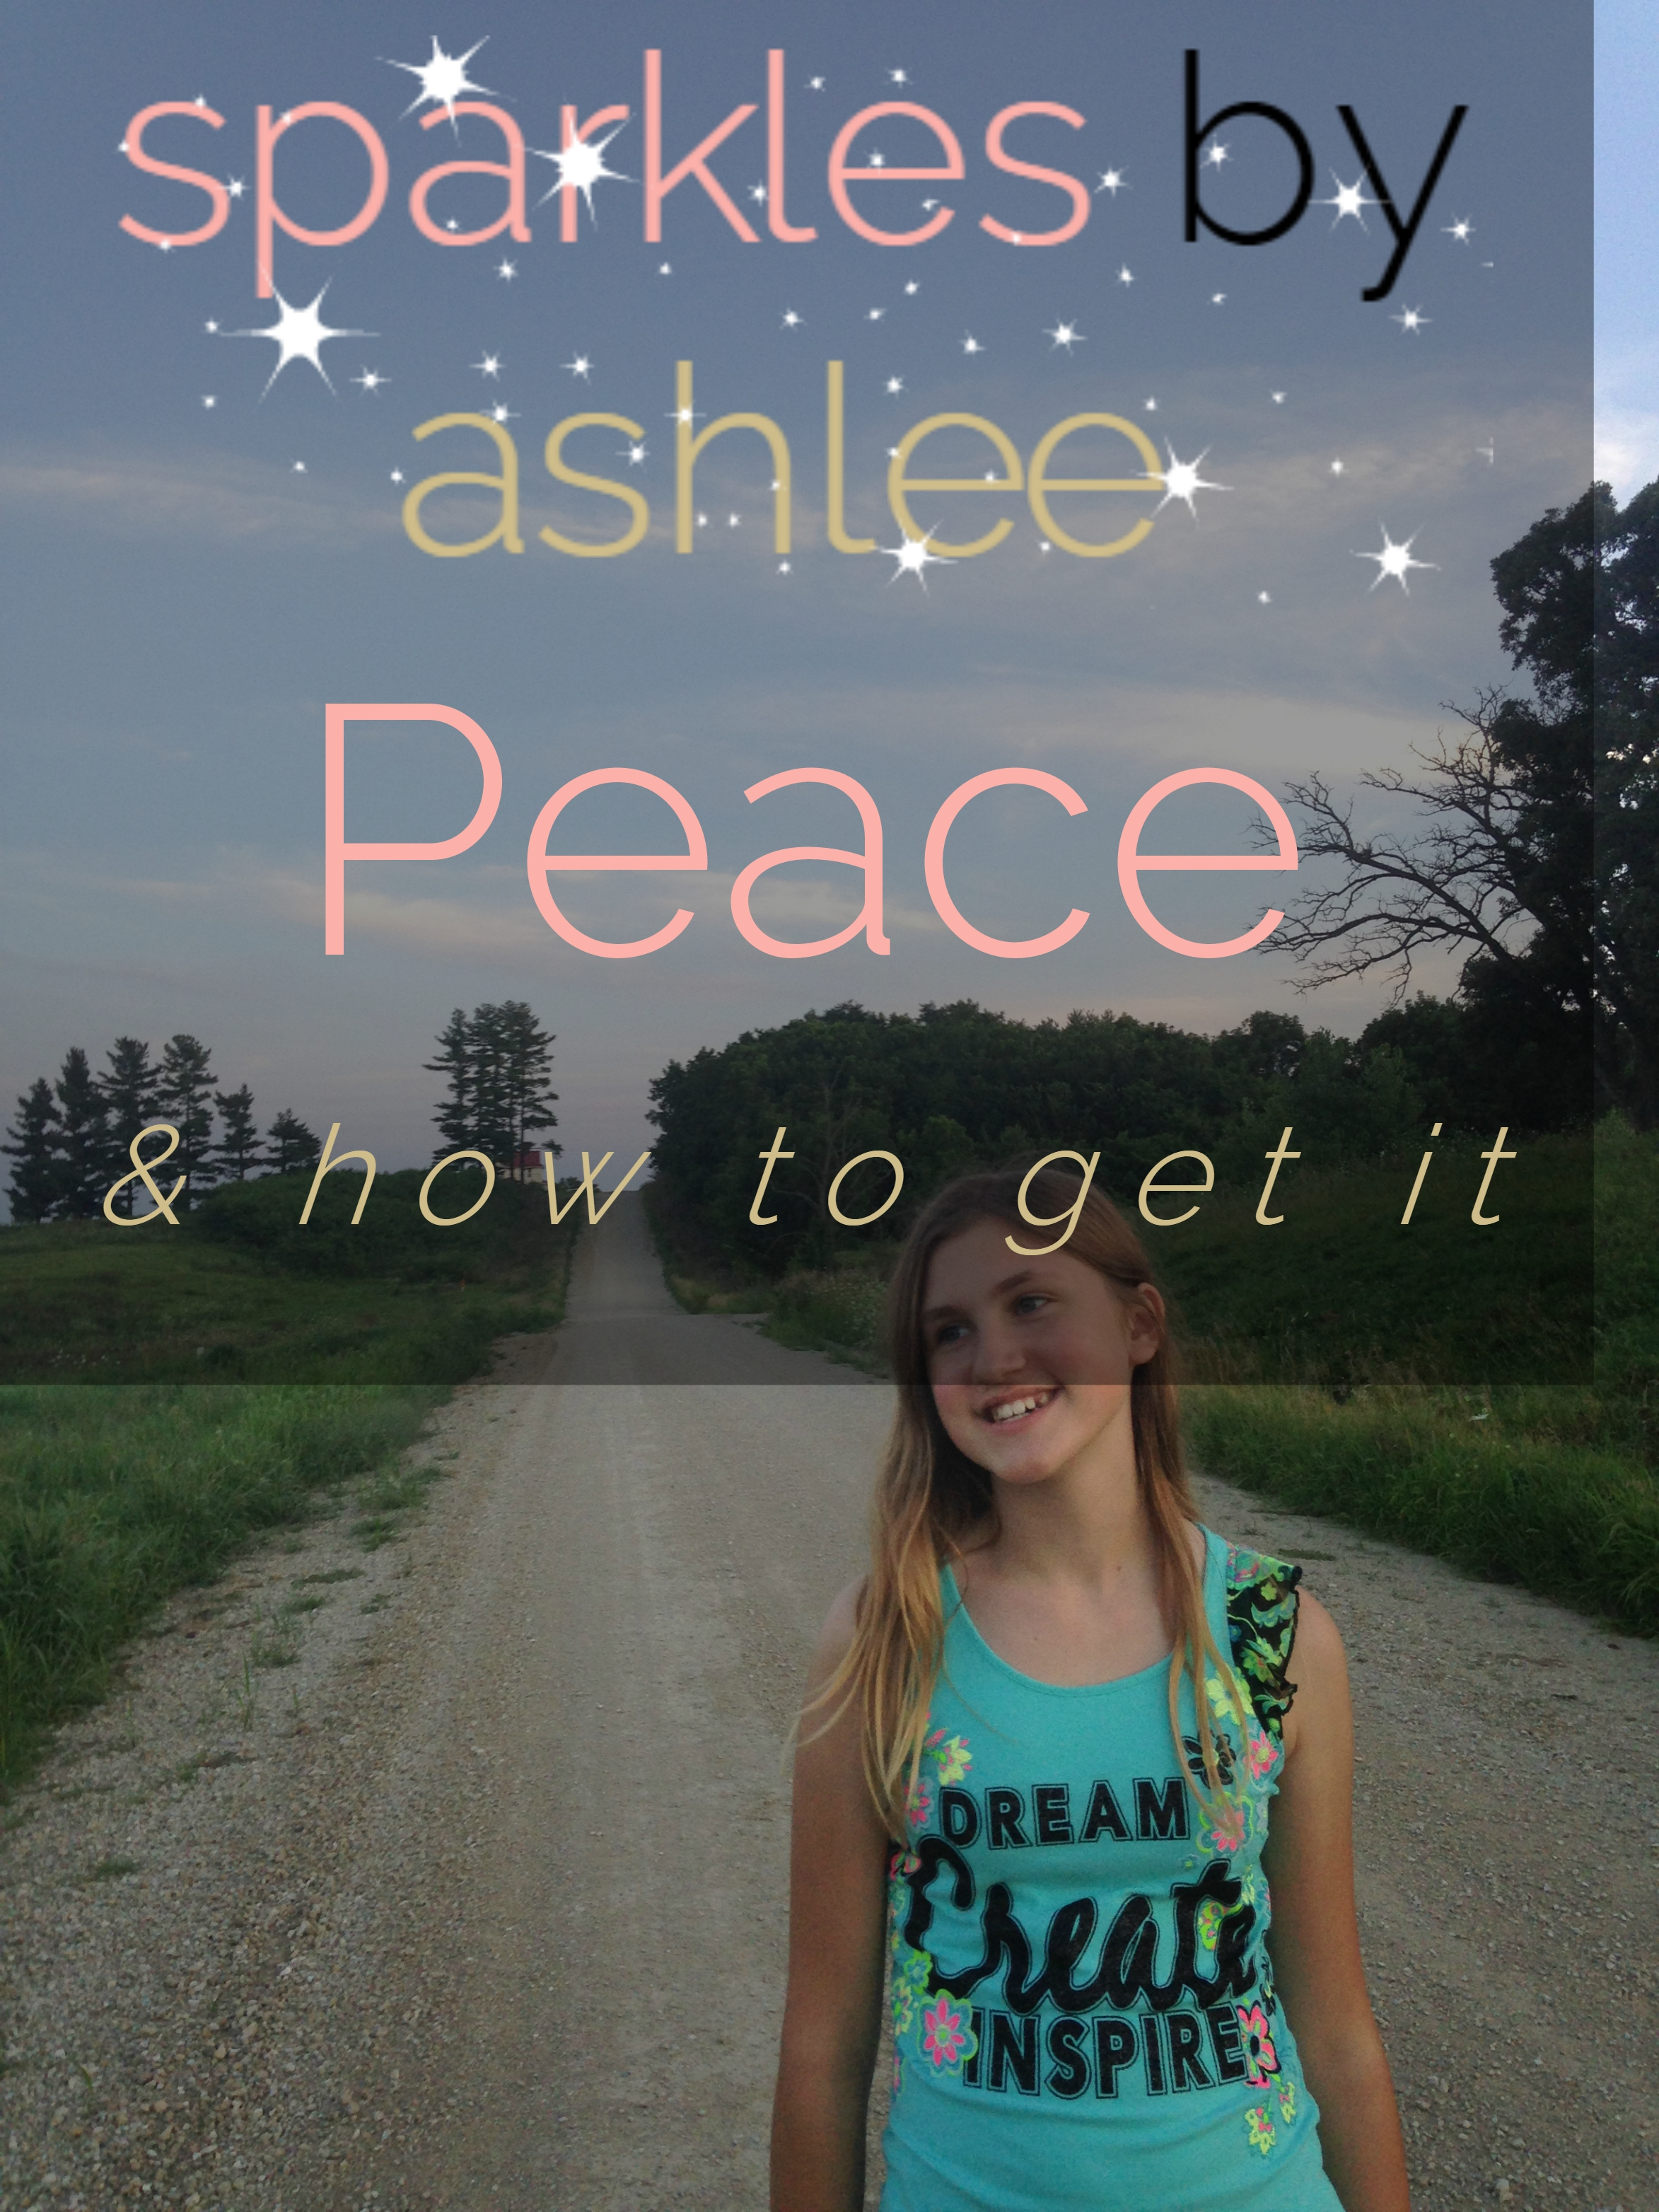 Peace-Sparkles-by-Ashlee.jpg